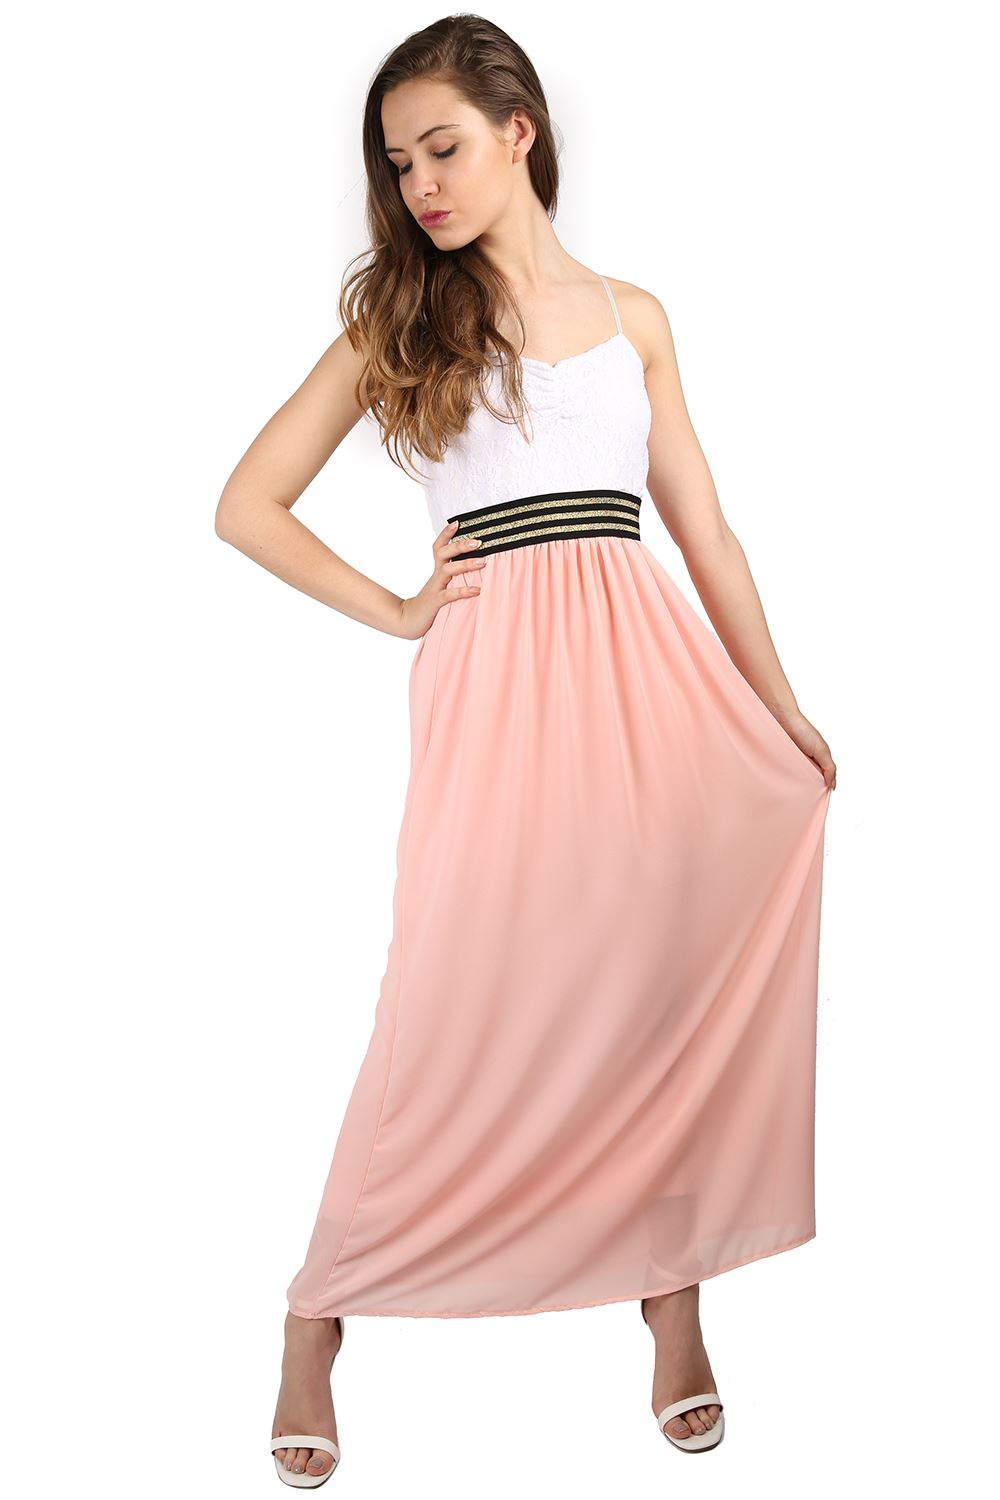 Be the perfect picture of feminine grace in a dreamy chiffon dress. These gorgeous flowing gowns and sheer dresses are very stylish. It is easy to find a chiffon creation to suite your mood or any occasion.